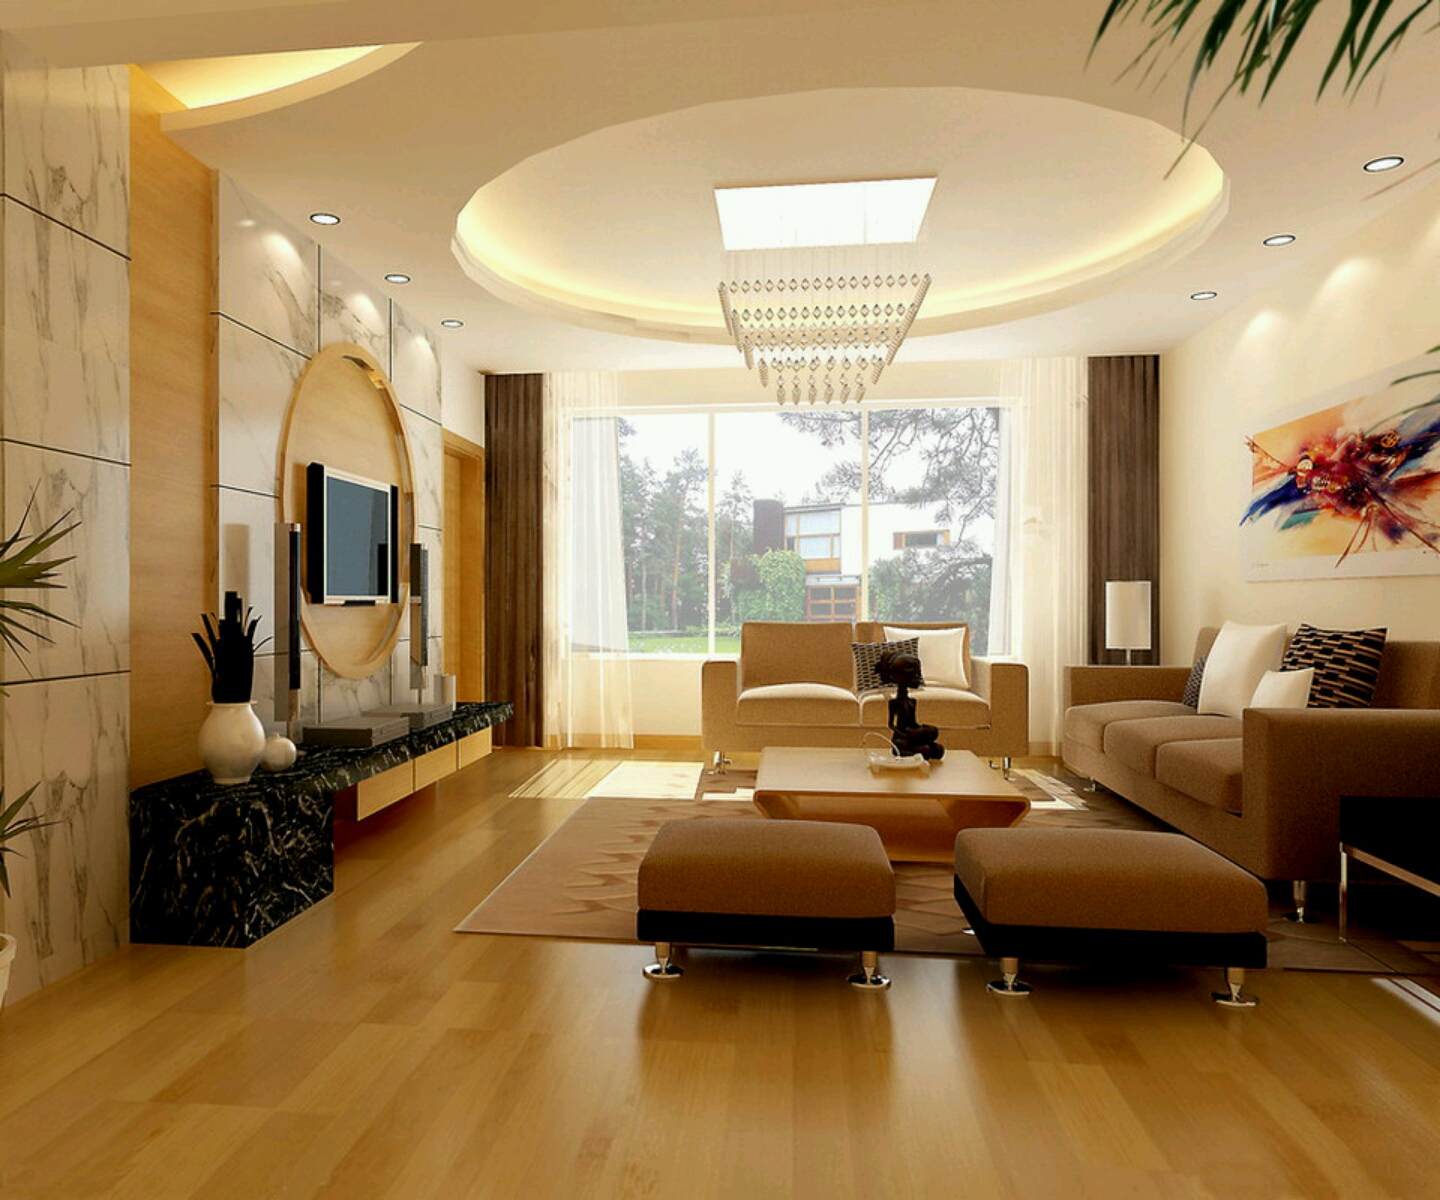 Modern interior decoration living rooms ceiling designs for New house decoration